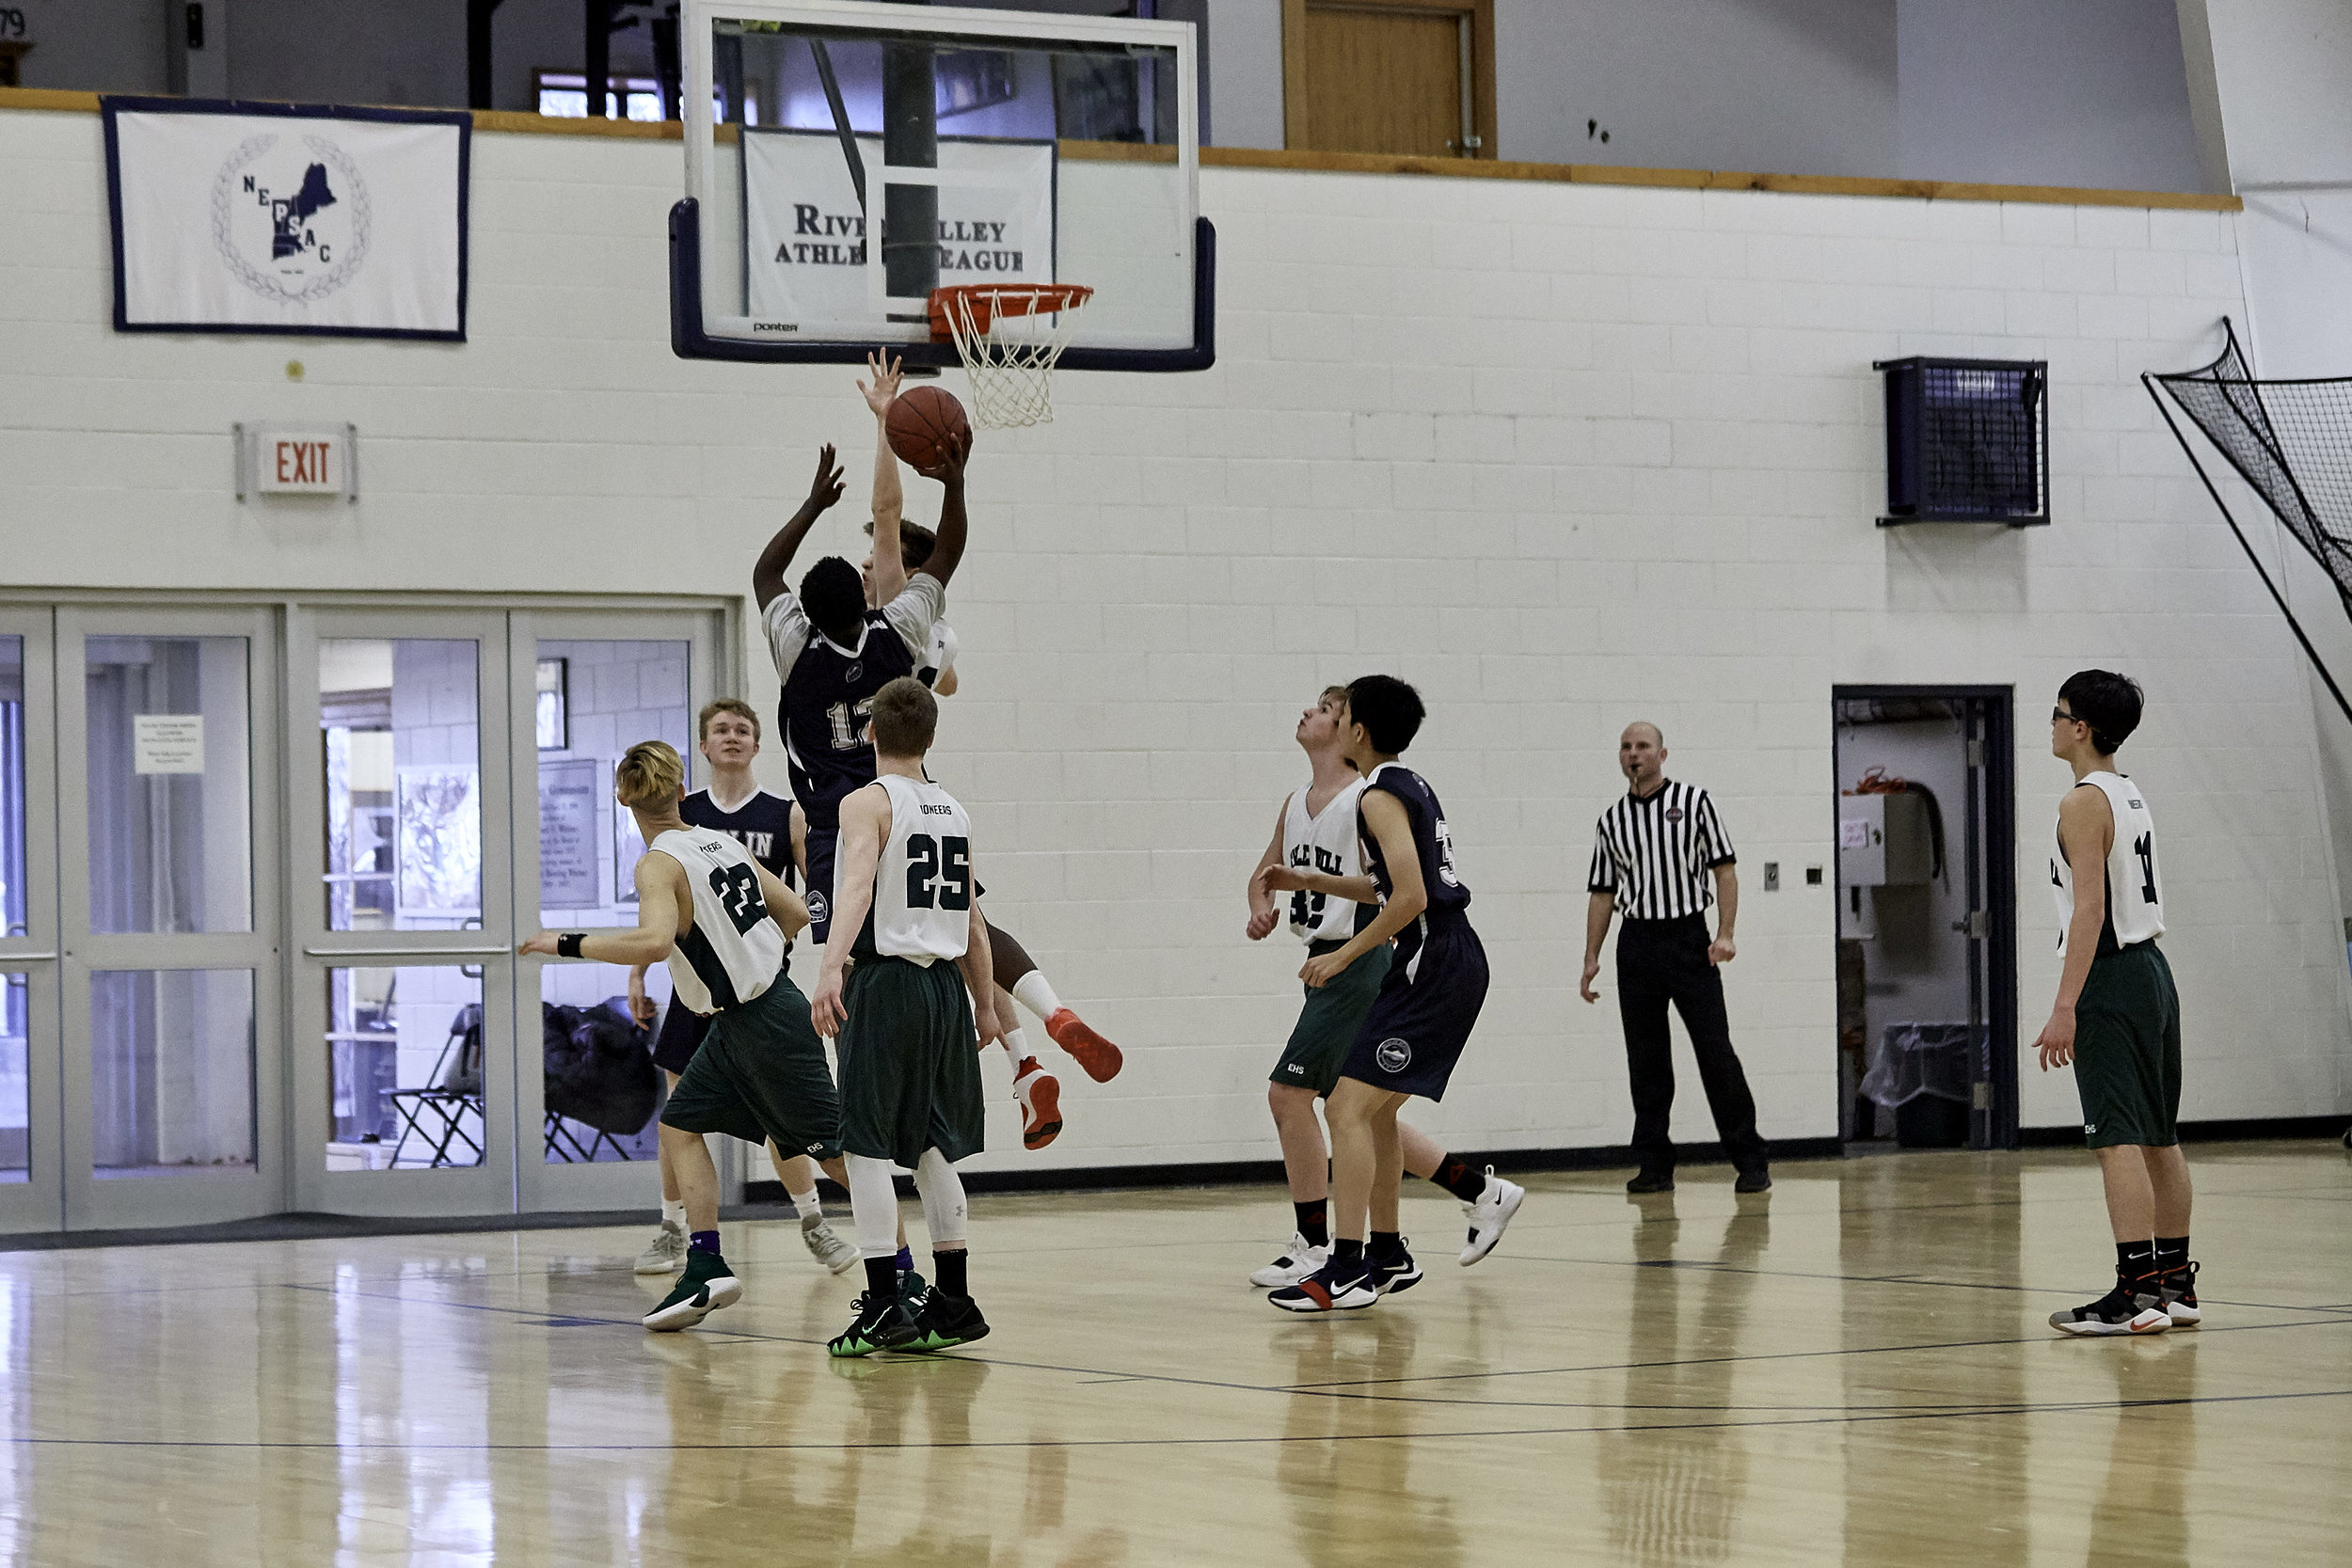 Boys Varsity Basketball vs. Eagle Hill School JV at RVAL Tournament - February 11, 2019 - 167932.jpg